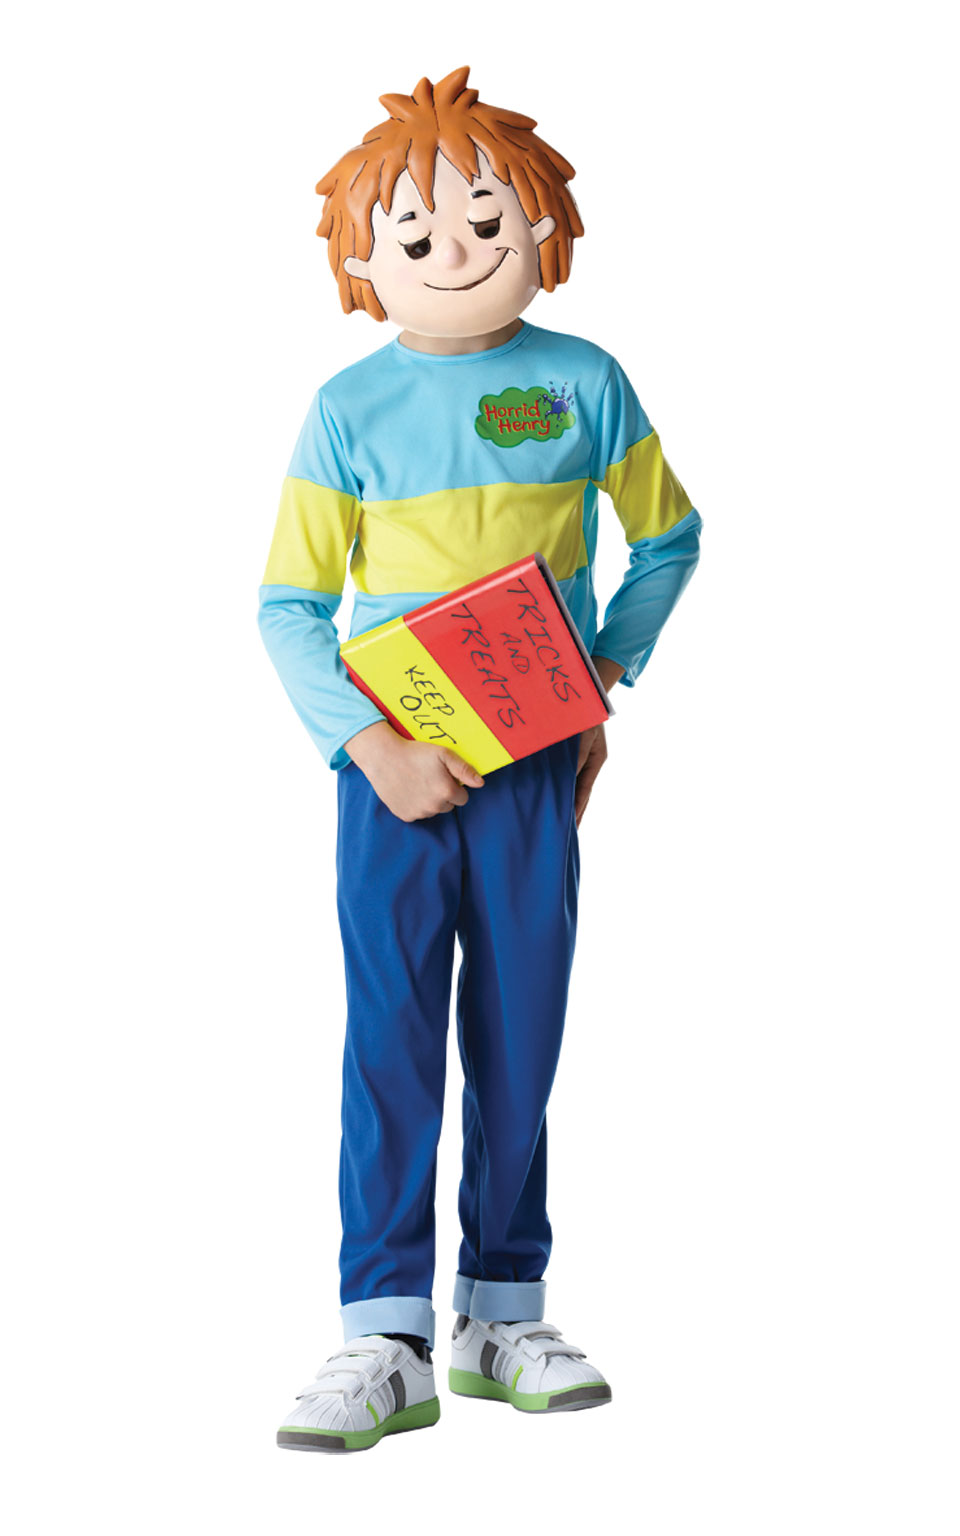 Sentinel Kids Boys Childs Horrid Henry Fancy Dress Costume Outfit Rubies Book Week Day  sc 1 st  eBay & Kids Boys Childs Horrid Henry Fancy Dress Costume Outfit Rubies Book ...